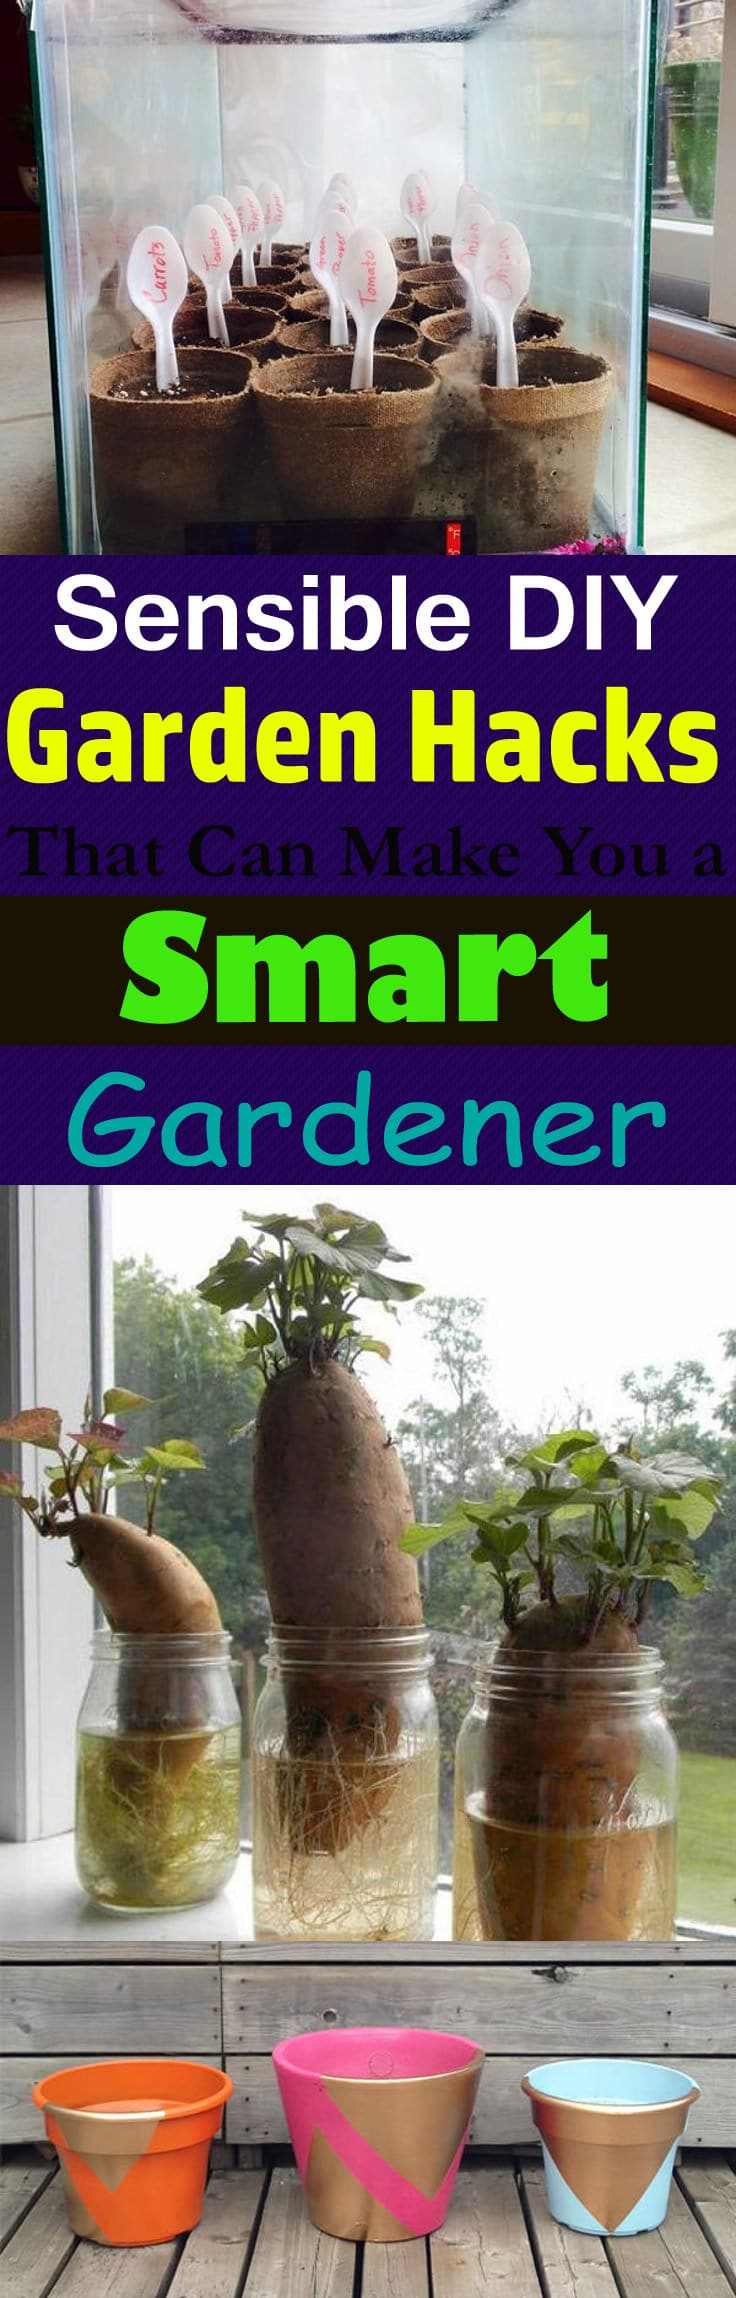 must take a look at these gardening hacks and diy ideas to make gardening easier and - Garden Hacks